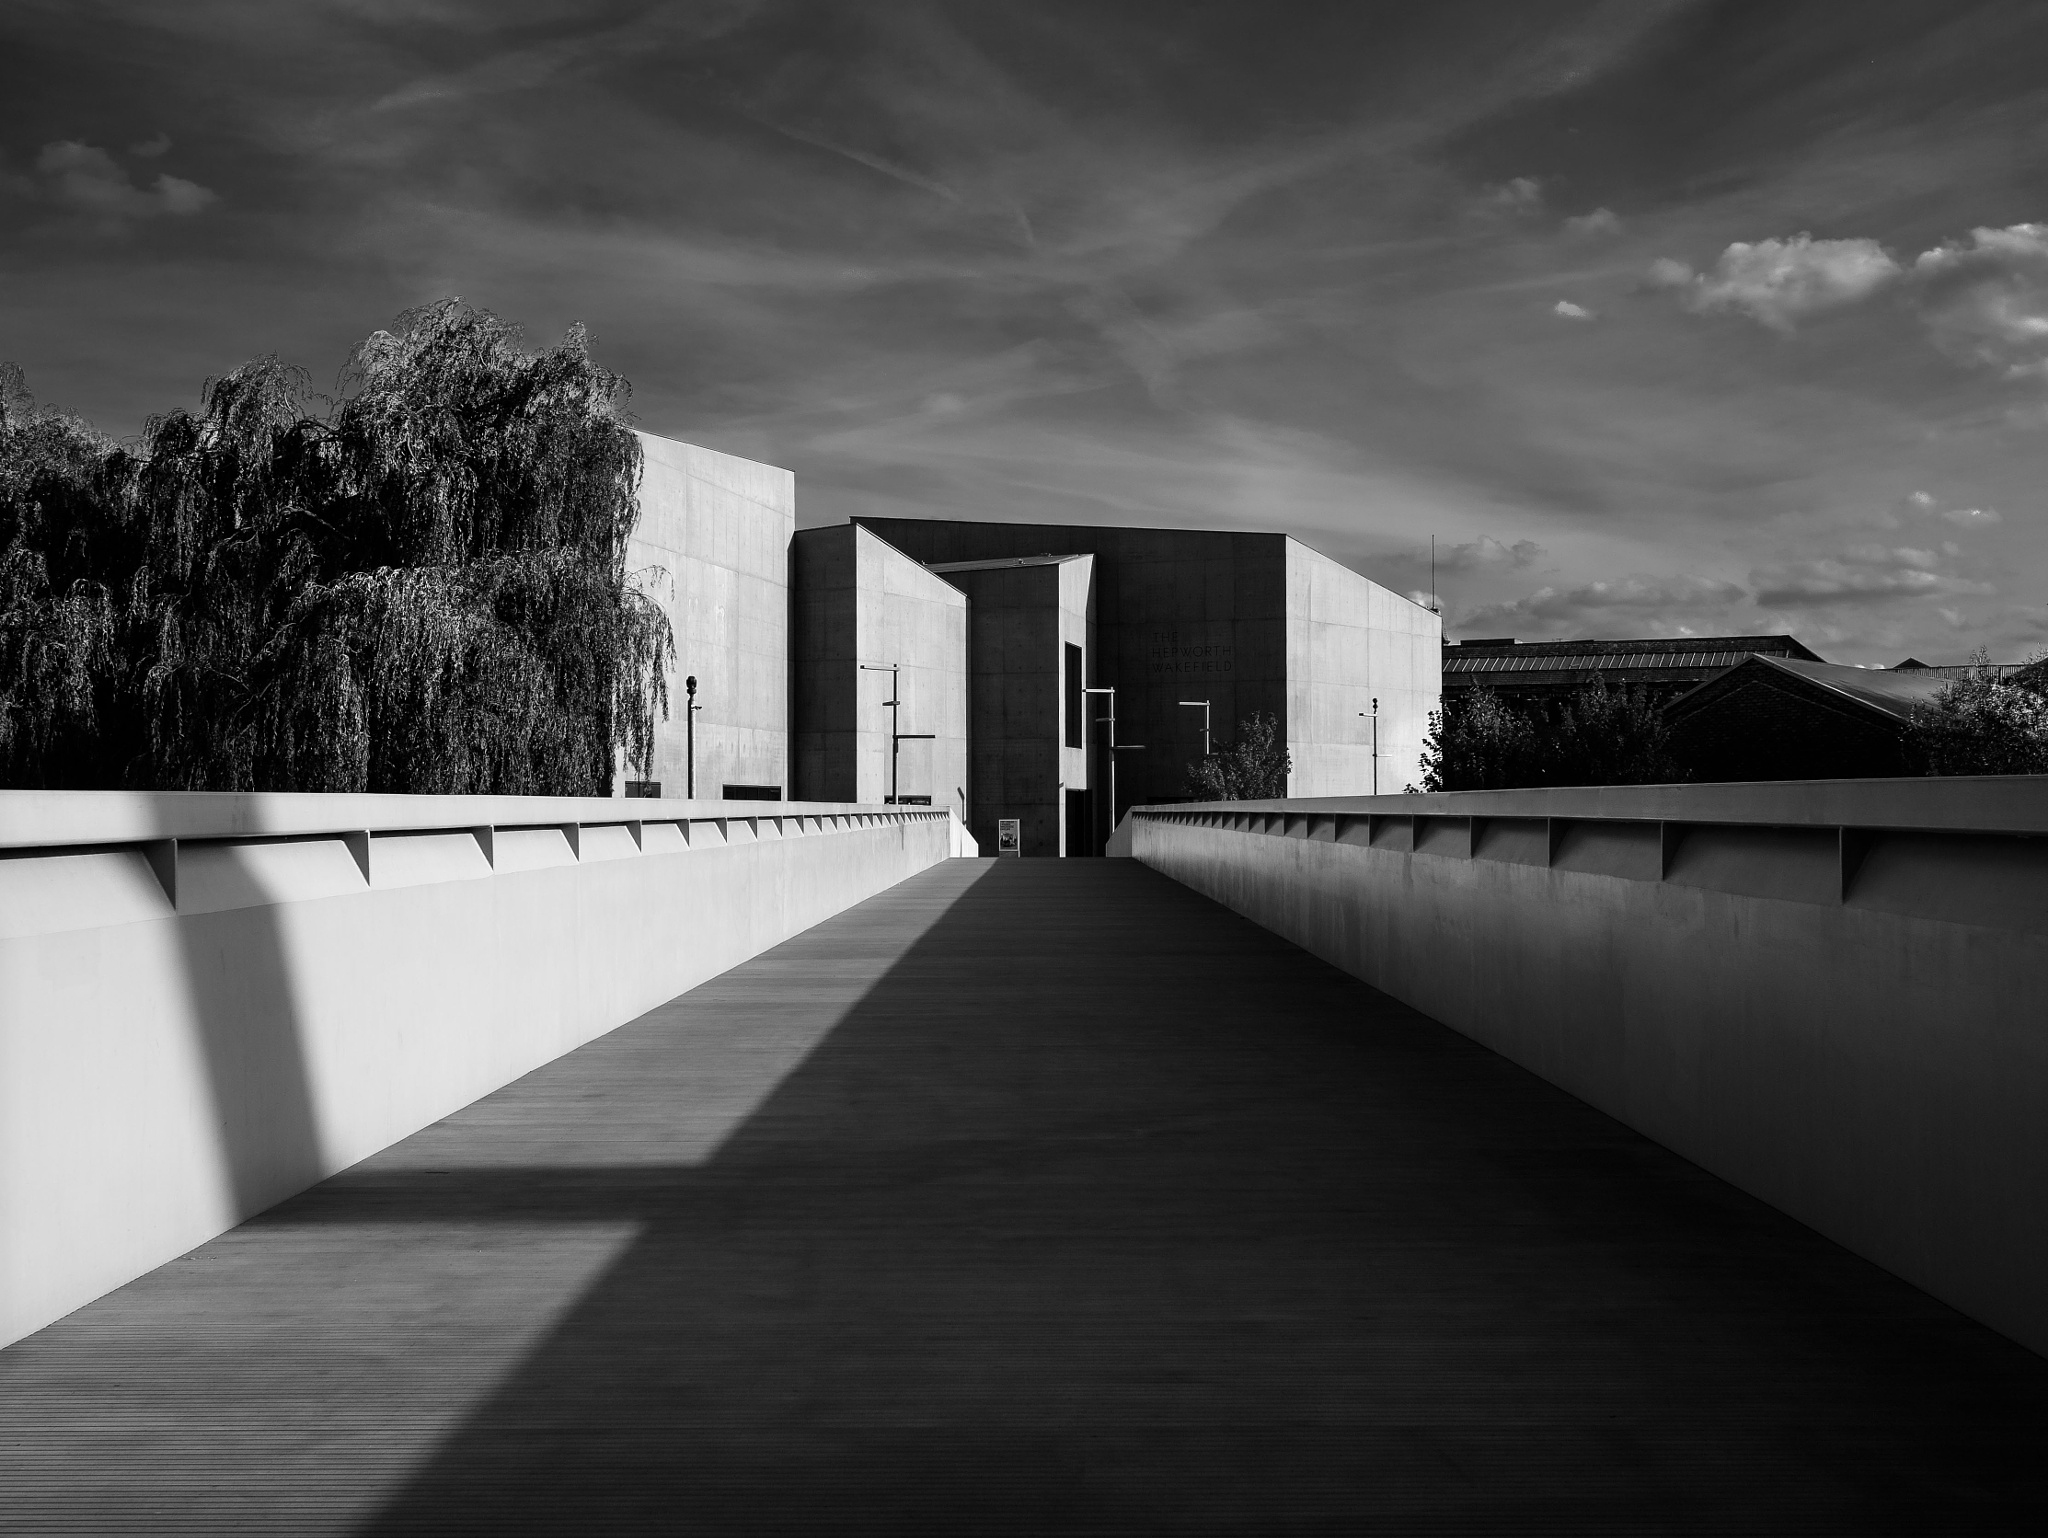 The Hepworth by Vicky Hindle